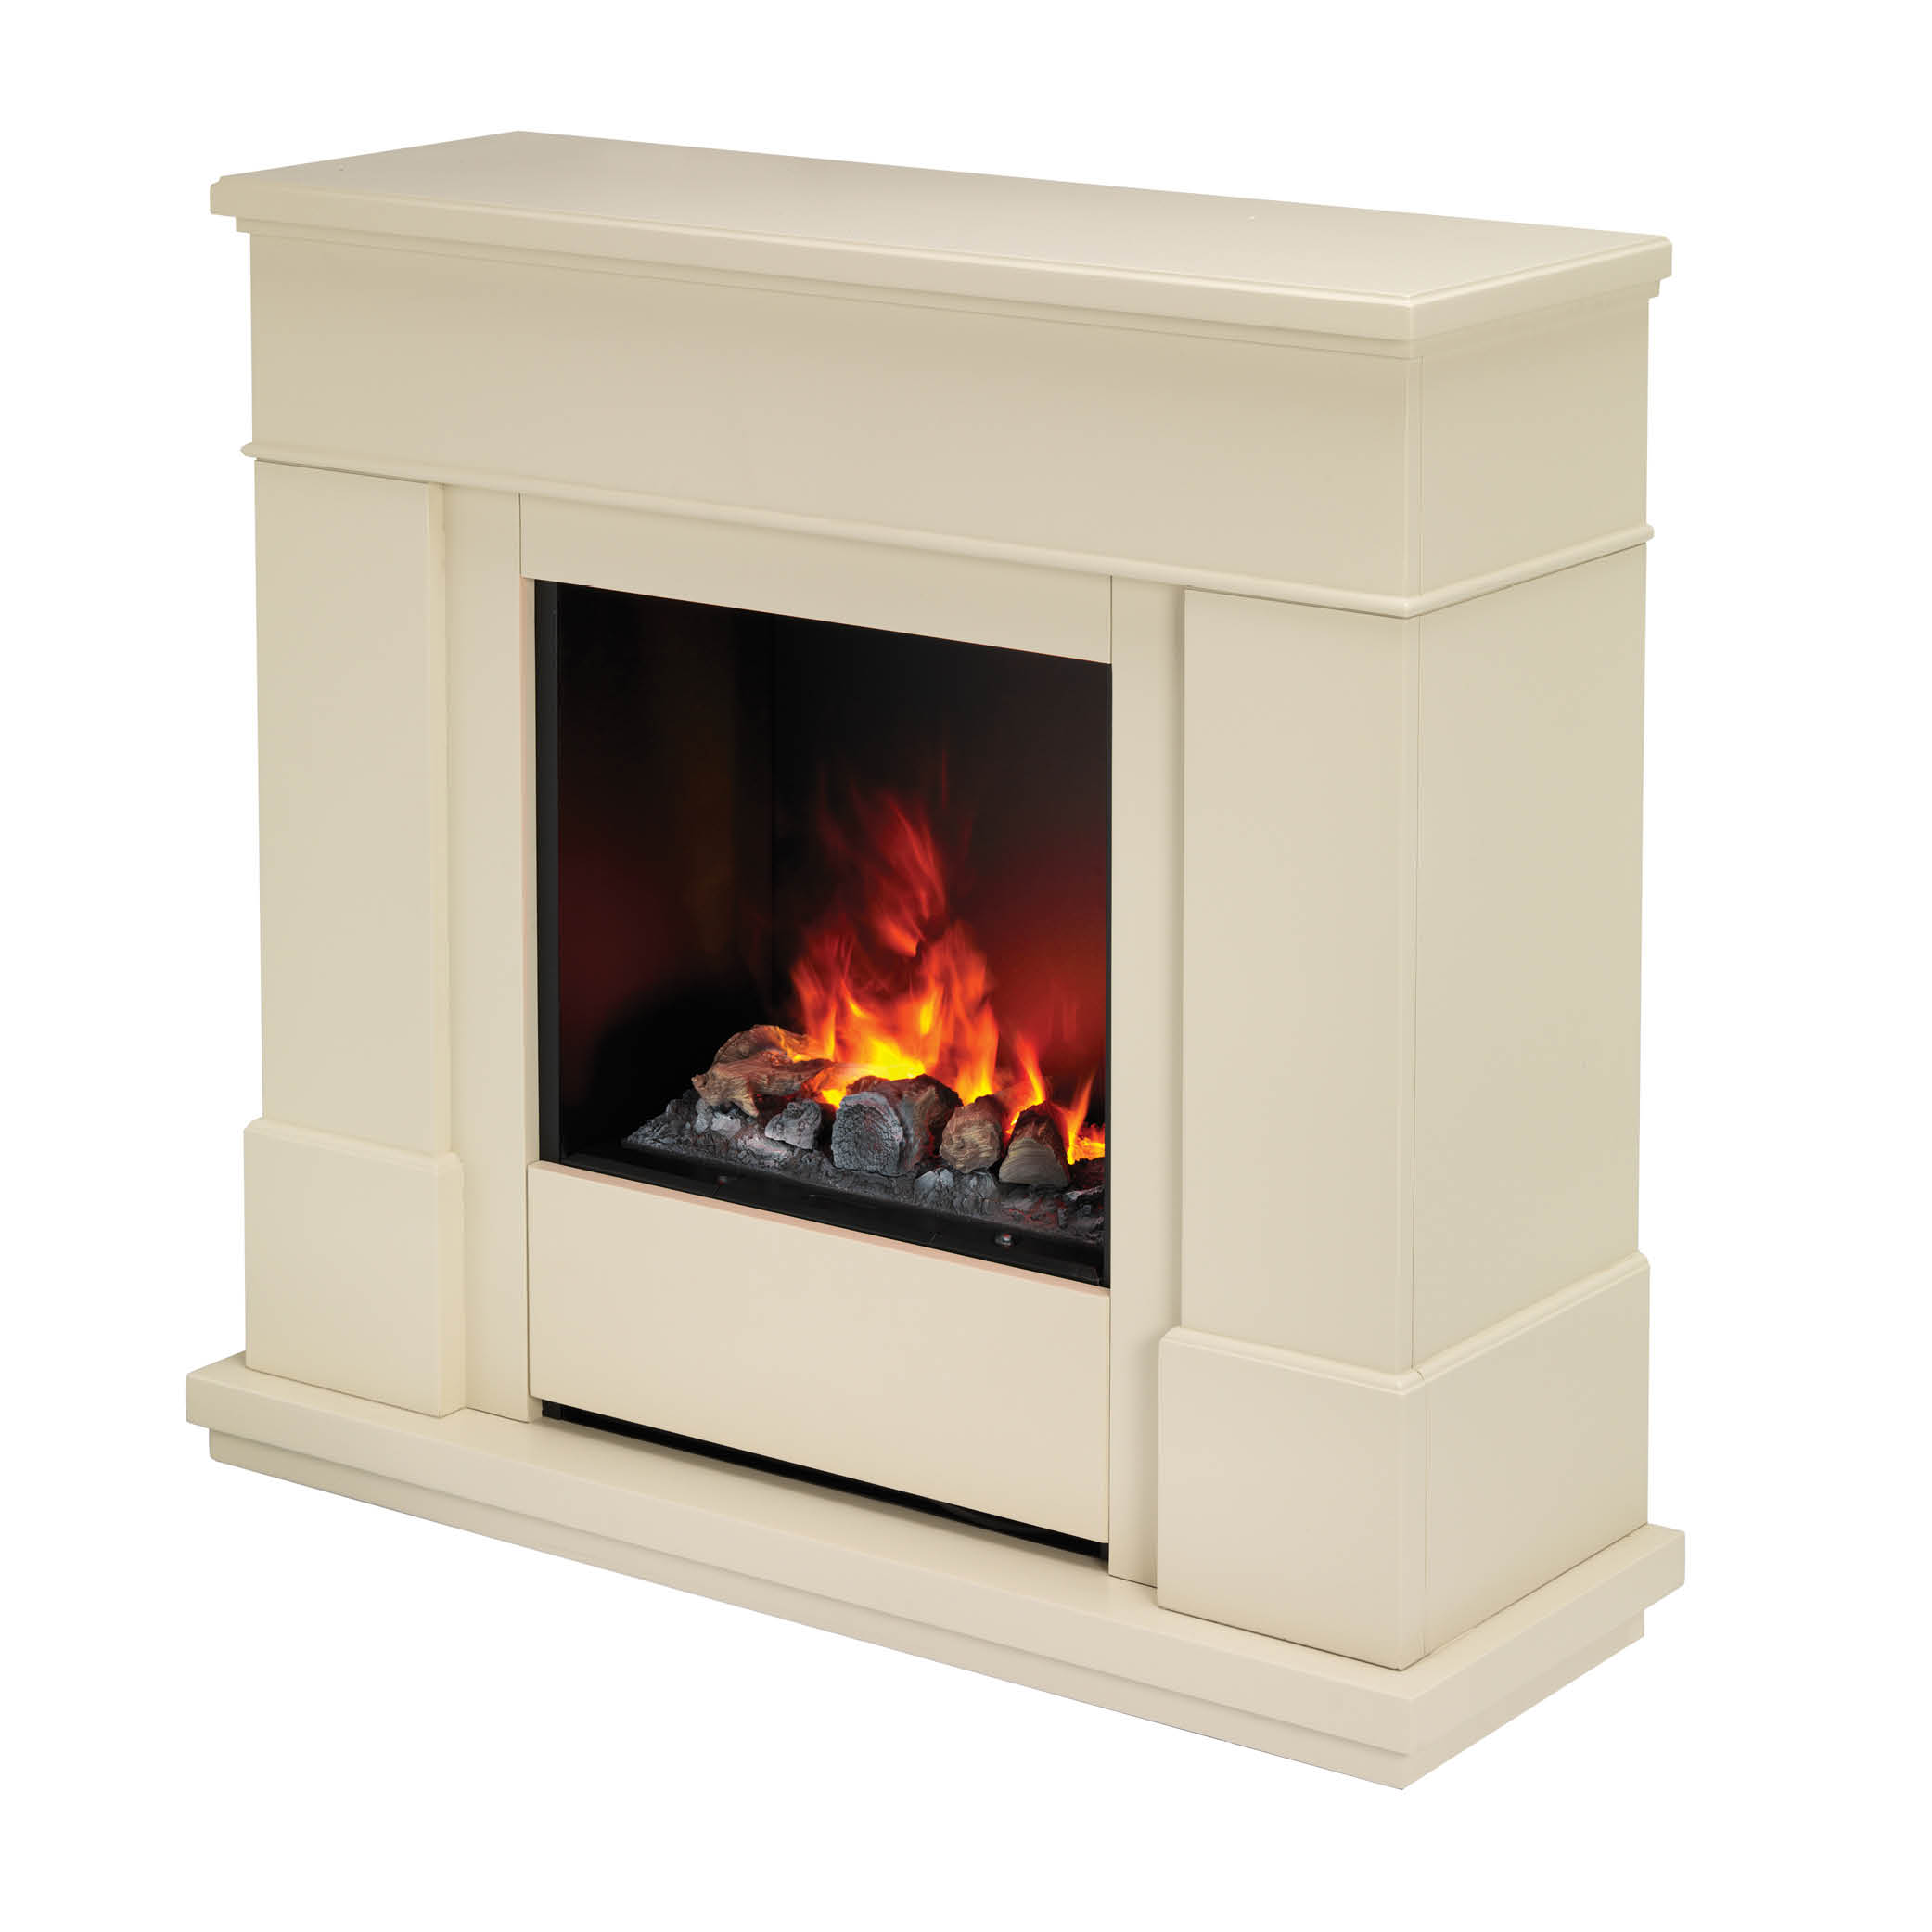 Moorefield 2kw Optimyst Electric Fire With Mantle Model